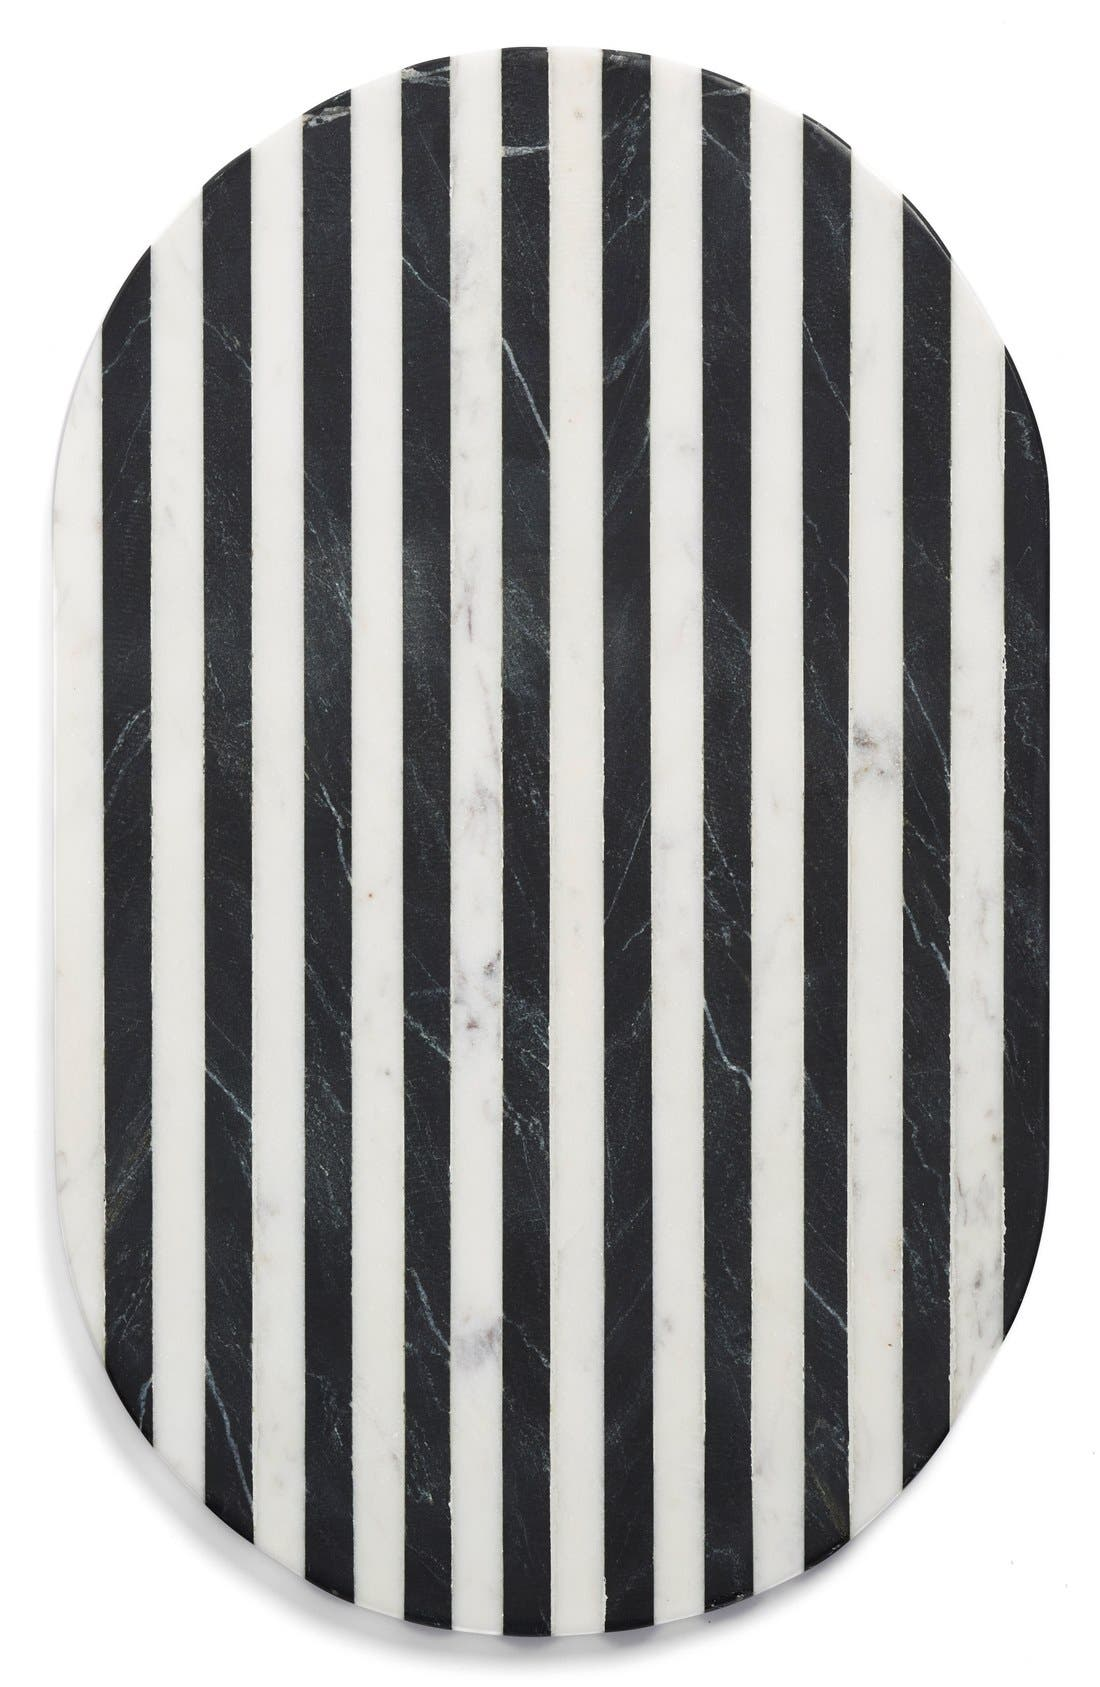 Thirstystone Black & White Oval Marble Serving Board